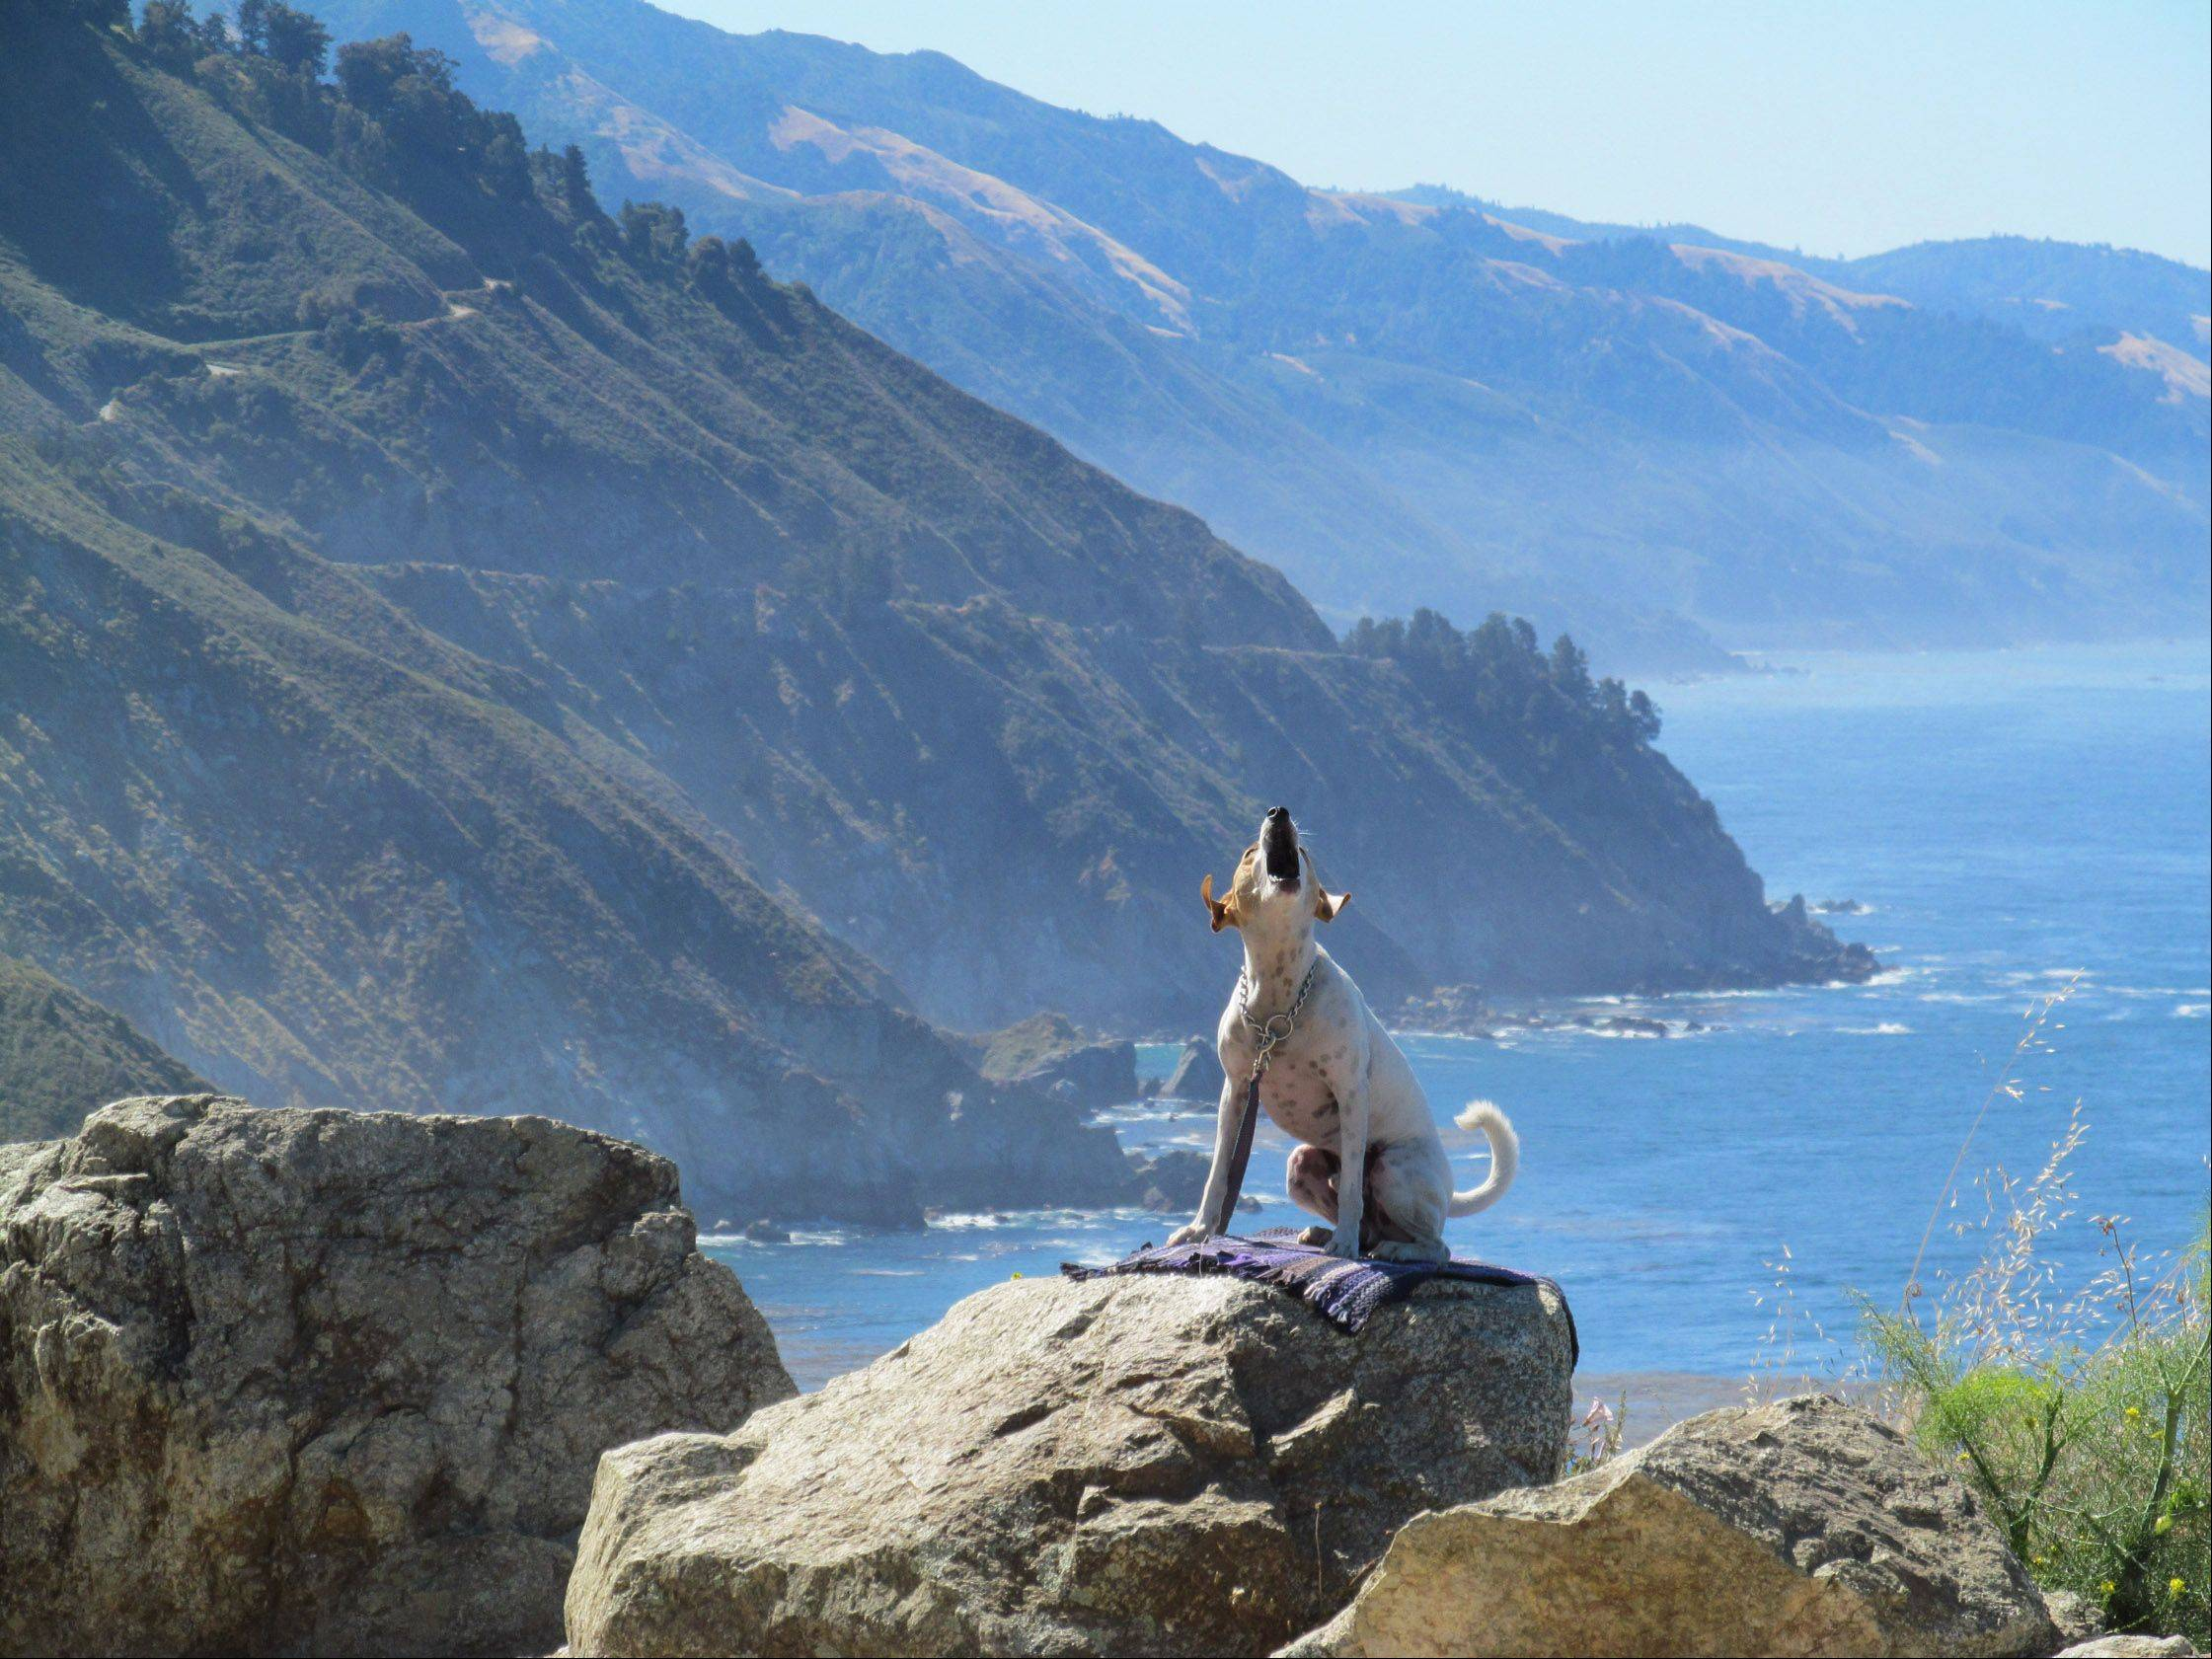 A dog barks at strangers near Big Sur, California last June. A man and his dog were watching for whales on the Pacific coast.